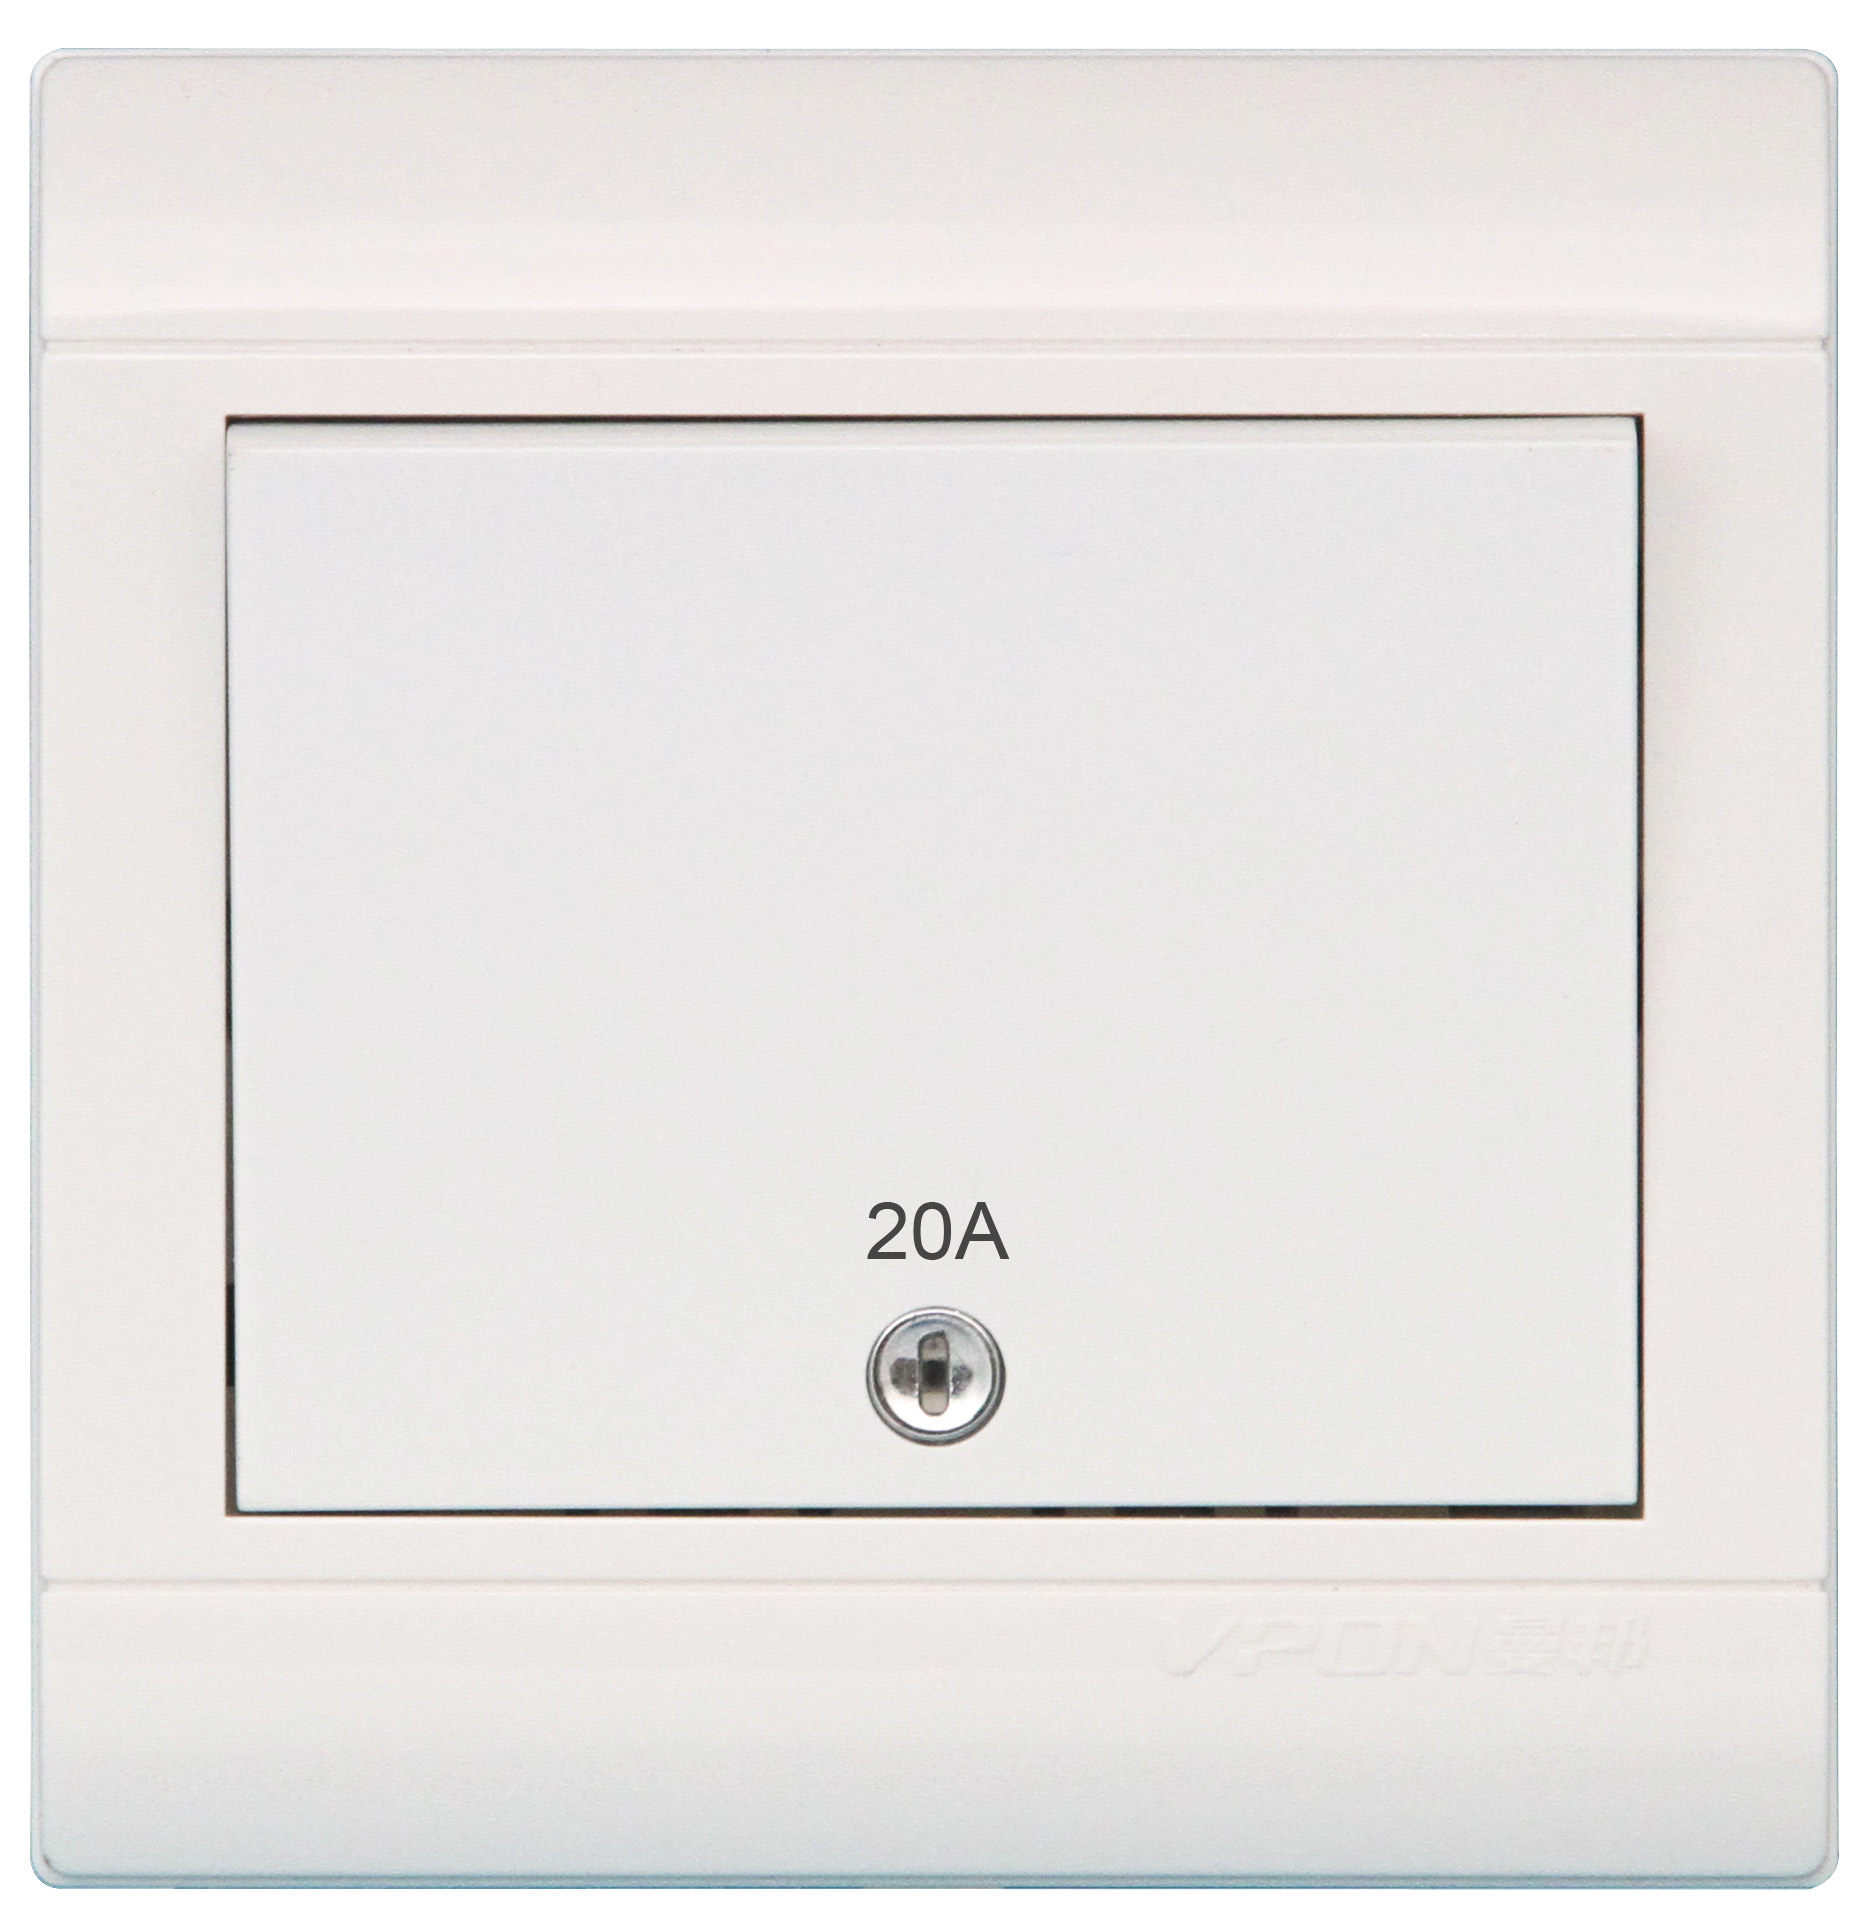 20A Double Pole switch with light